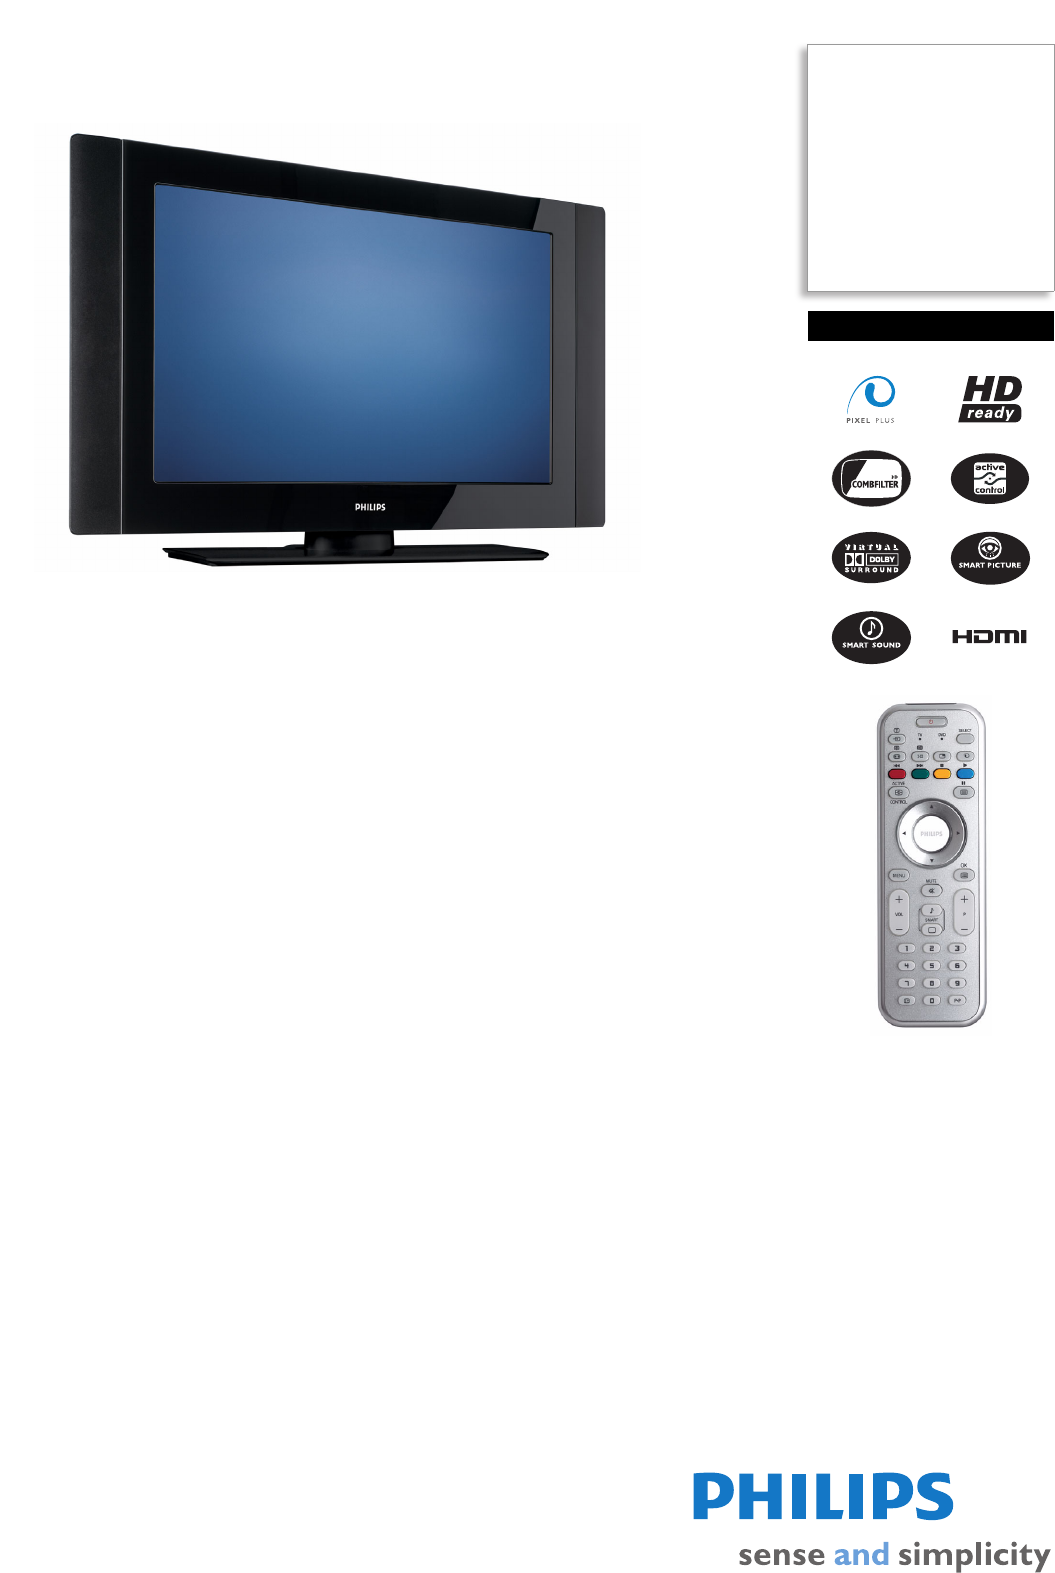 part store philips flat panel television 42pf7411 user manual rh partstore manualsonline com Philips TV Philips HDTV Rear LCD